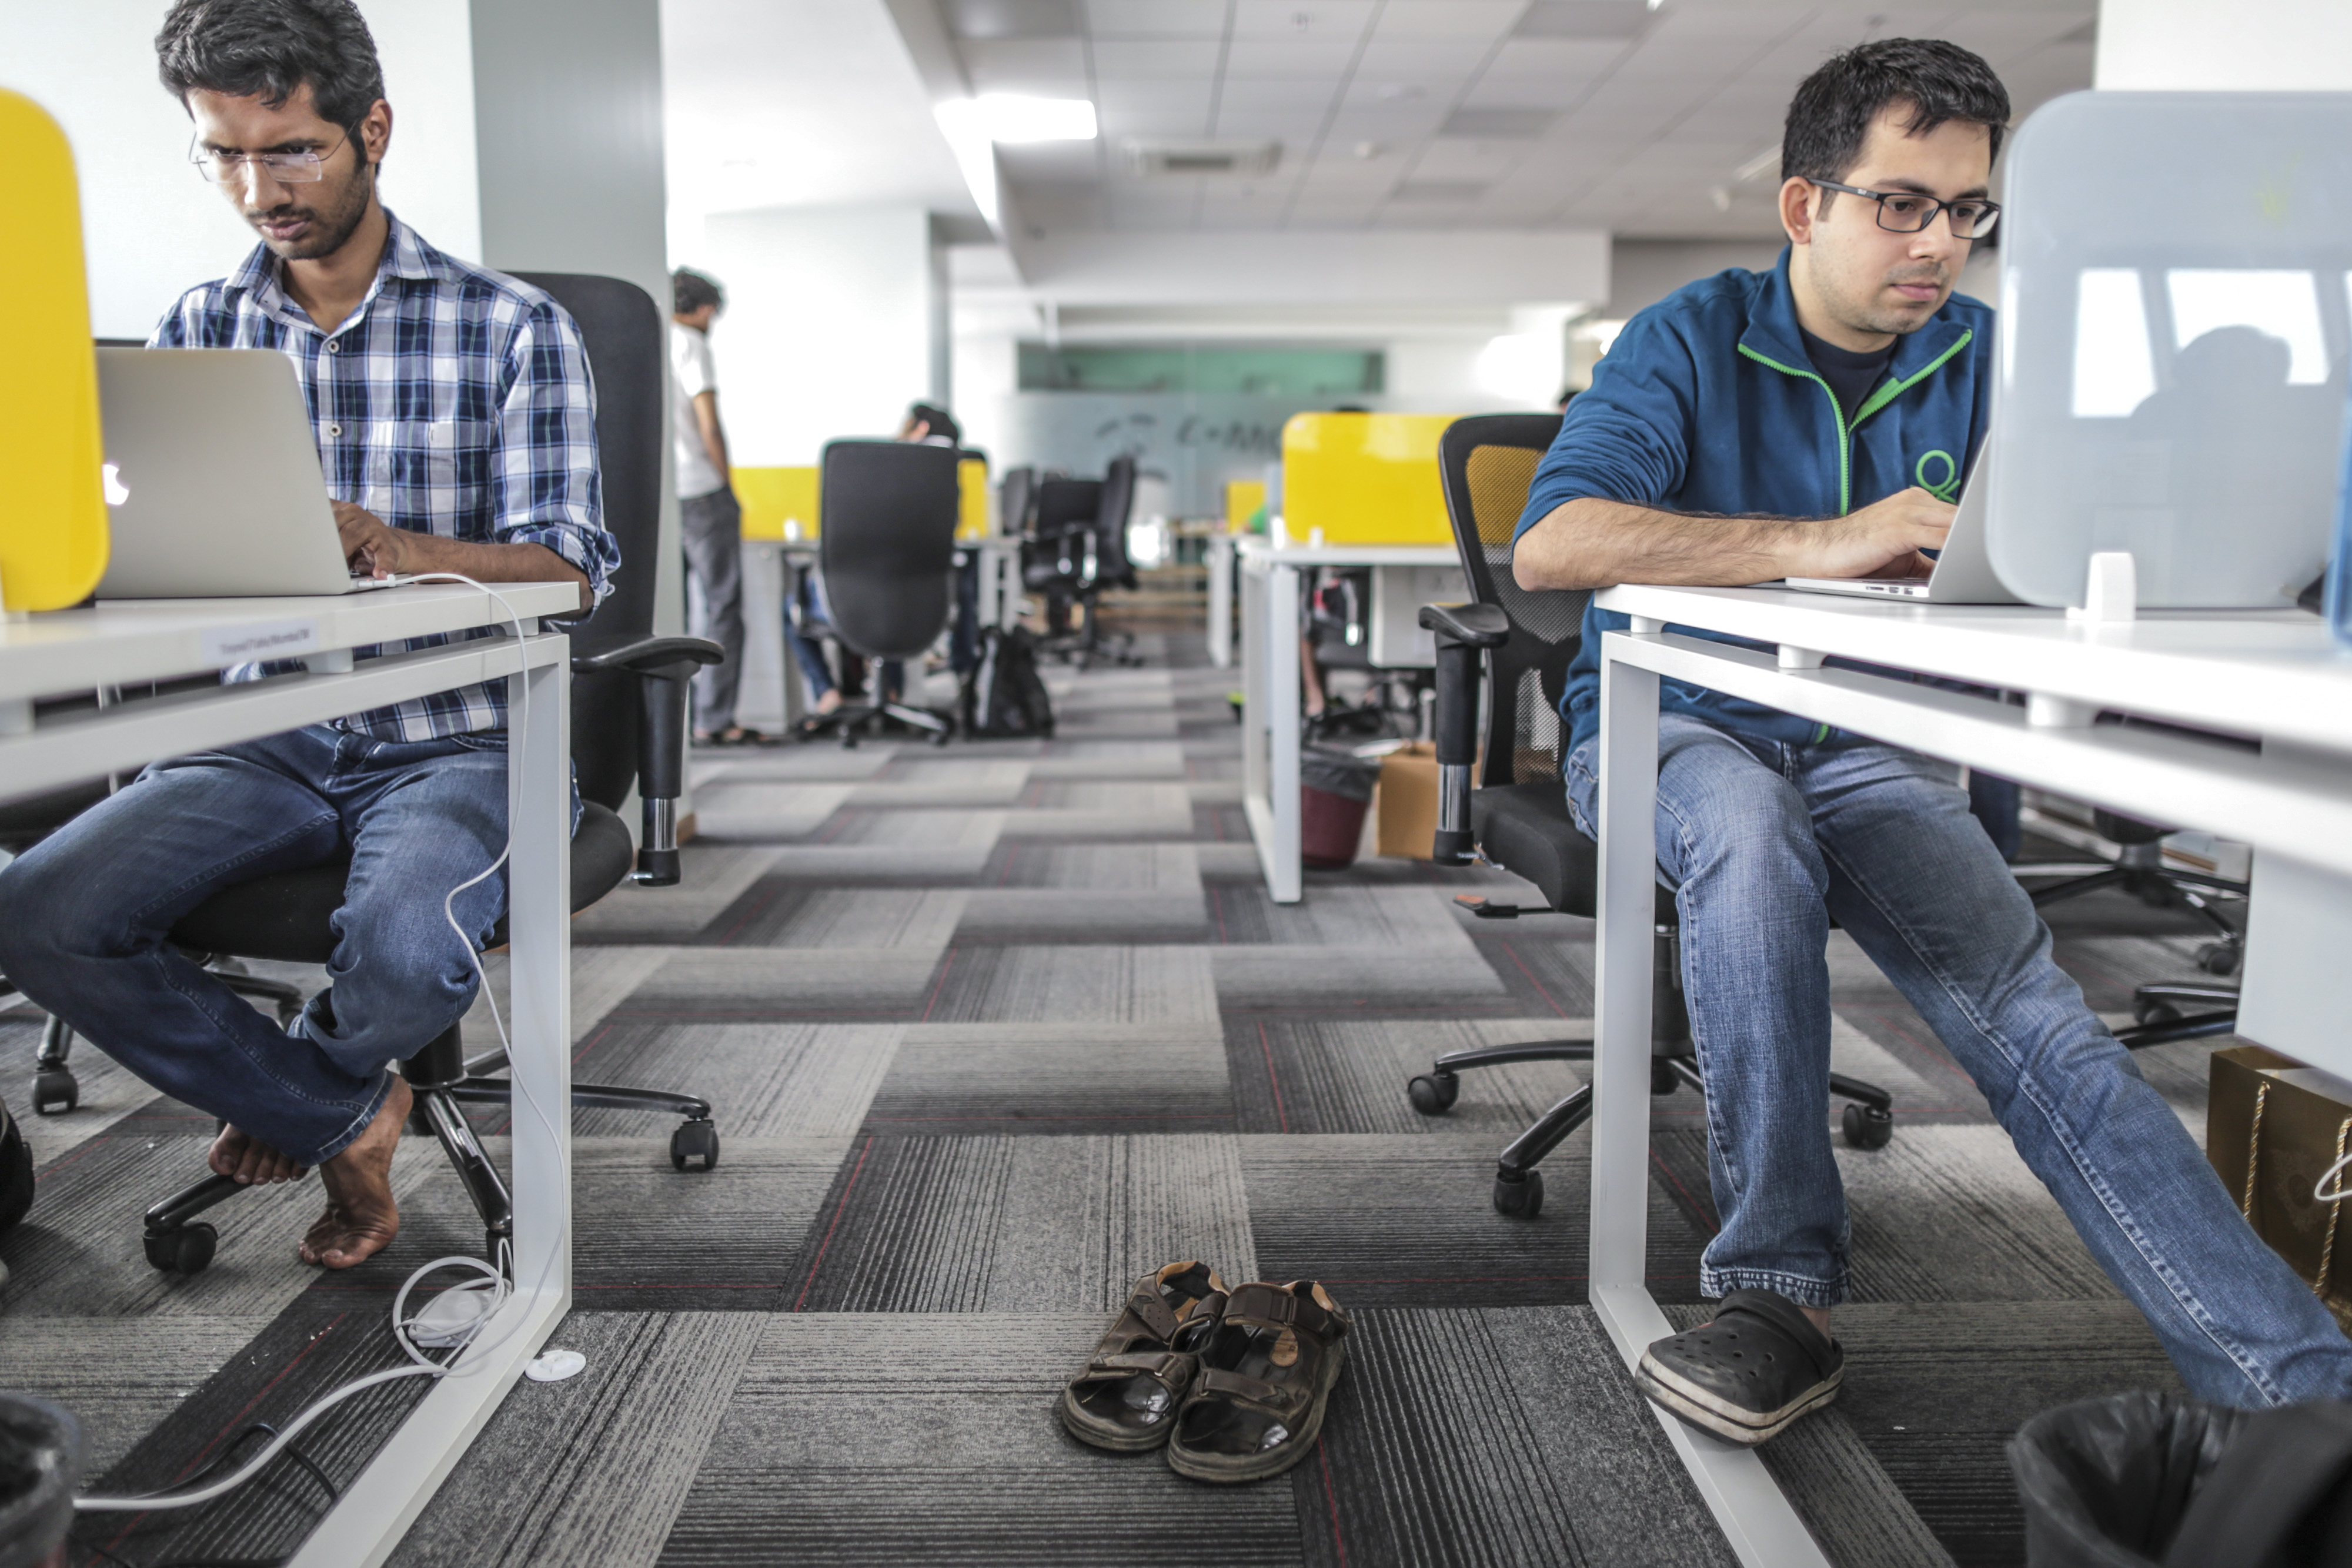 Tiny Owl employees work on laptop computers as pair of sandals sit on the floor inside the company's head office in Mumbai, India, on Monday, March. 9, 2015.